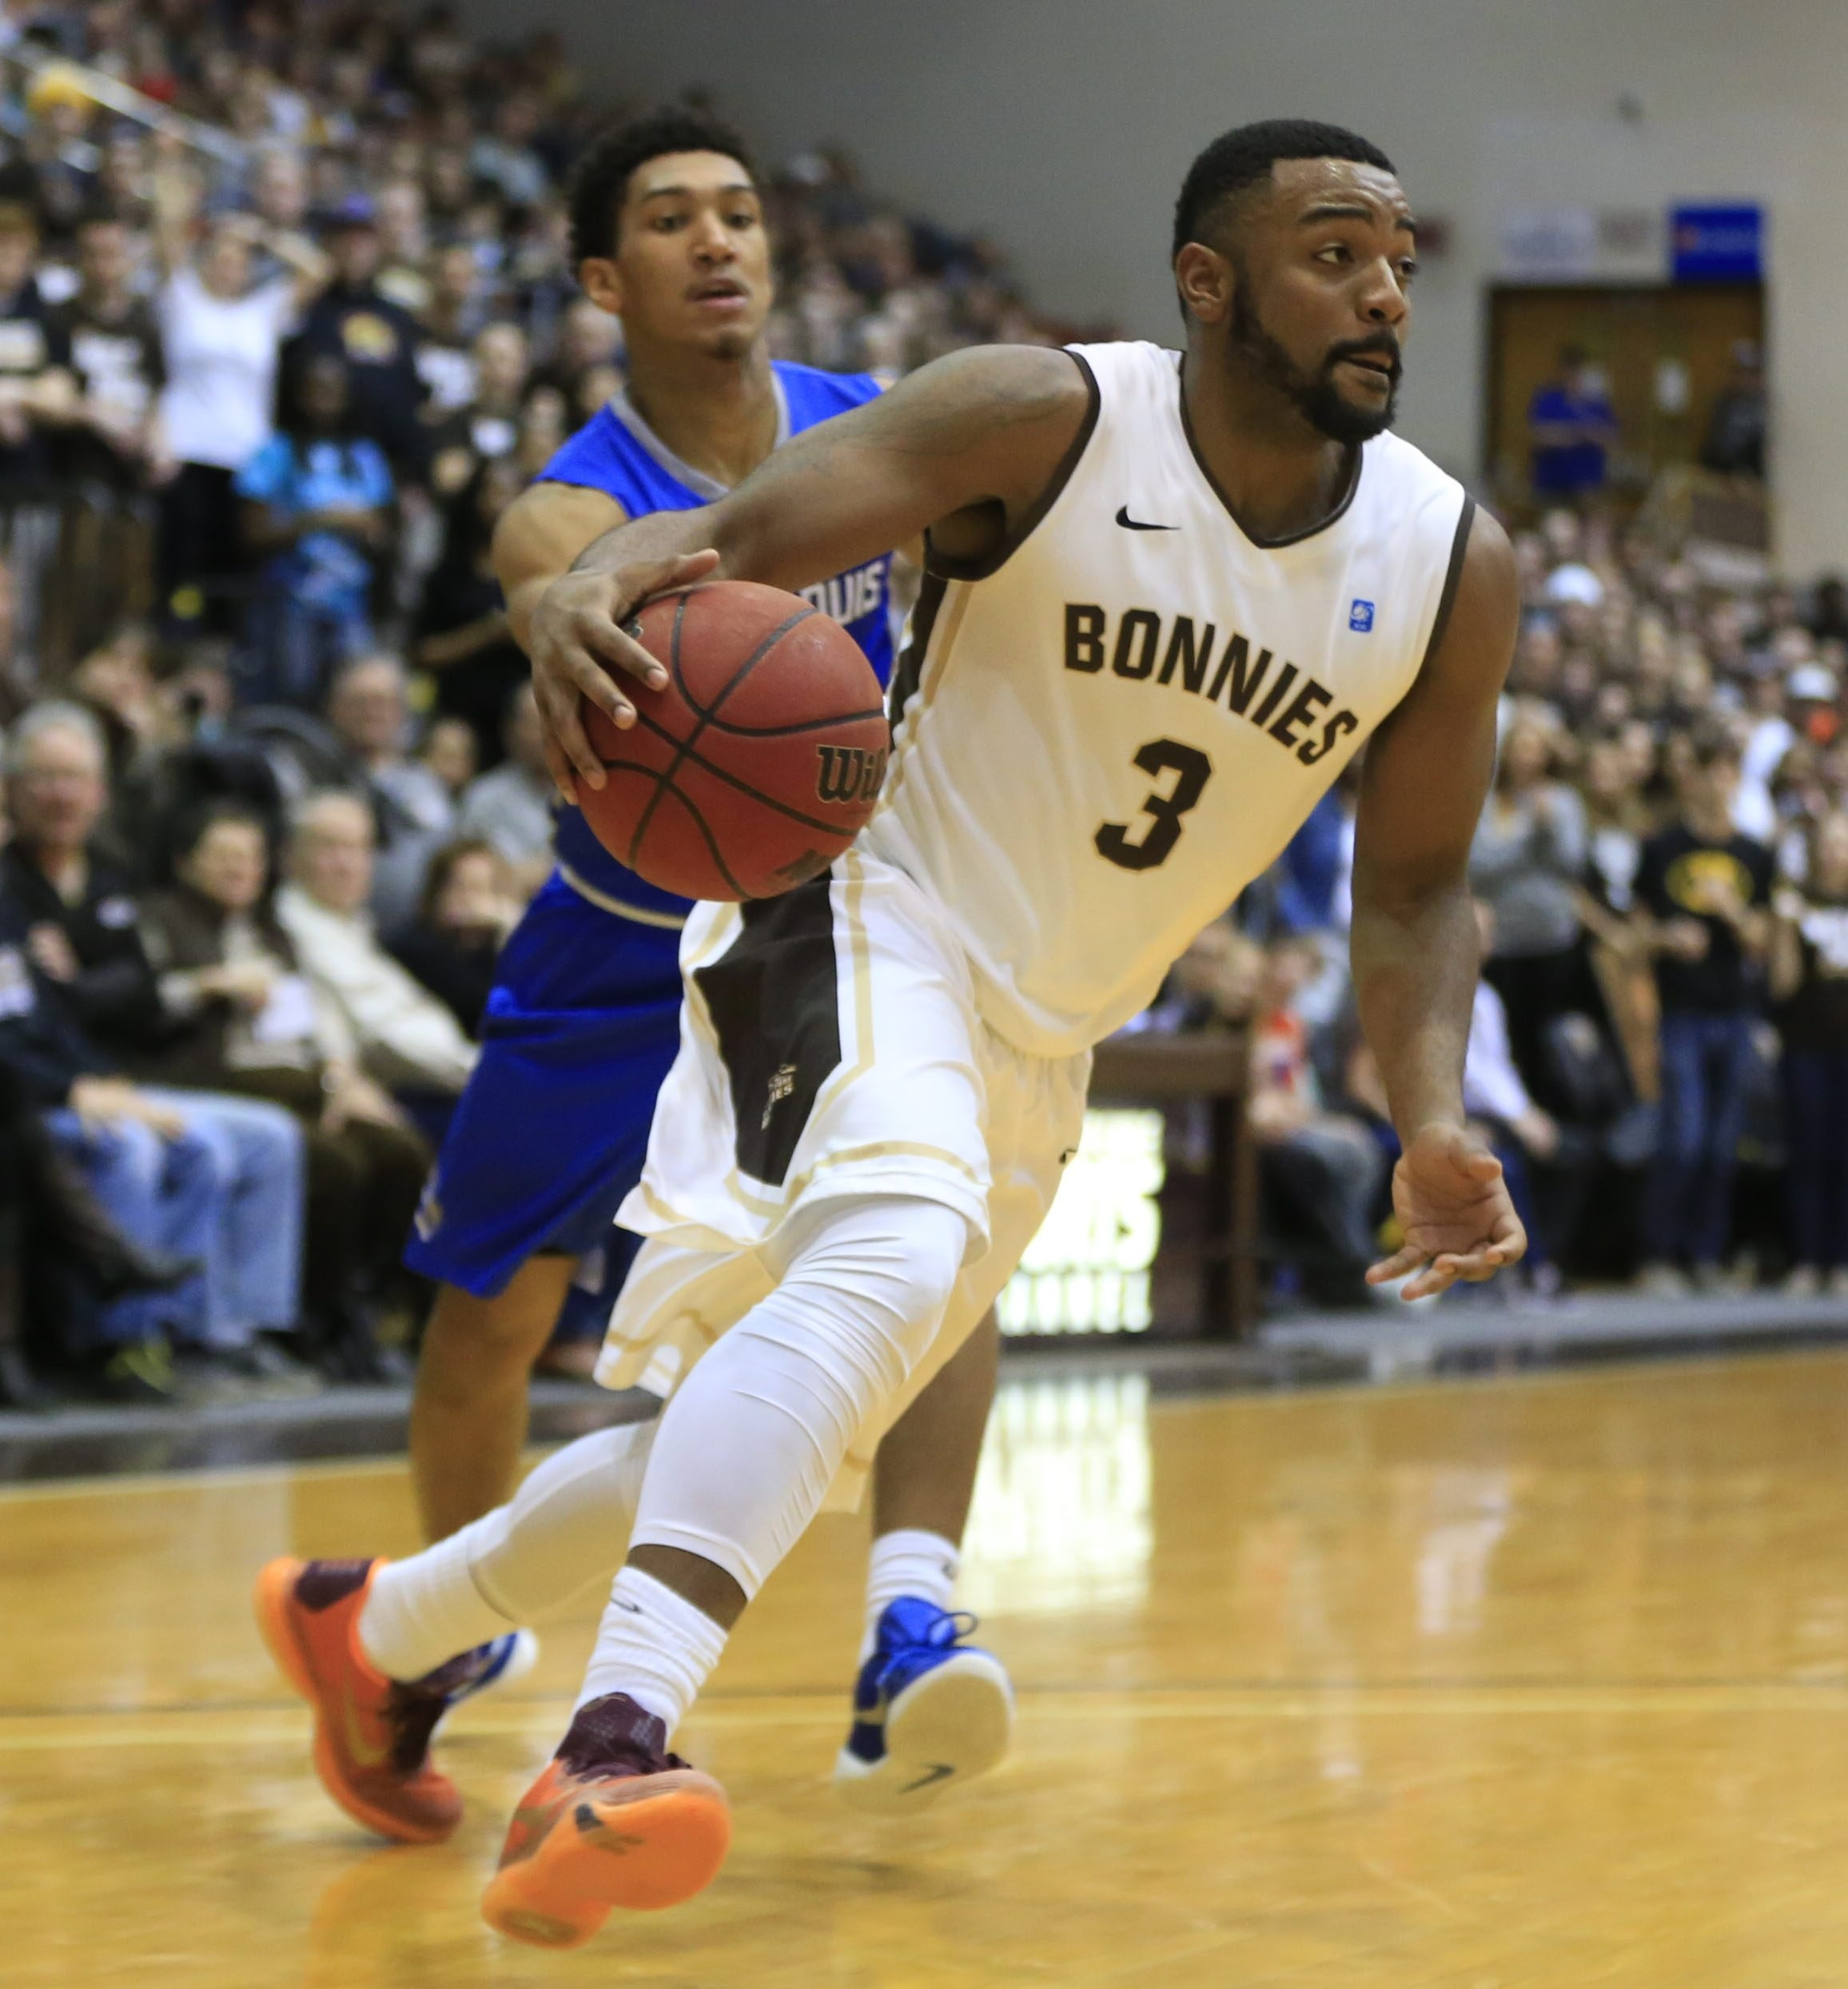 """St. Bonaventure guard Marcus Posley said, """"To be a part of history and what we accomplished this year is really cool but, yeah, it's disappointing"""" to get left out of the NCAA Tournament. (Harry Scull Jr./Buffalo News files photo)"""